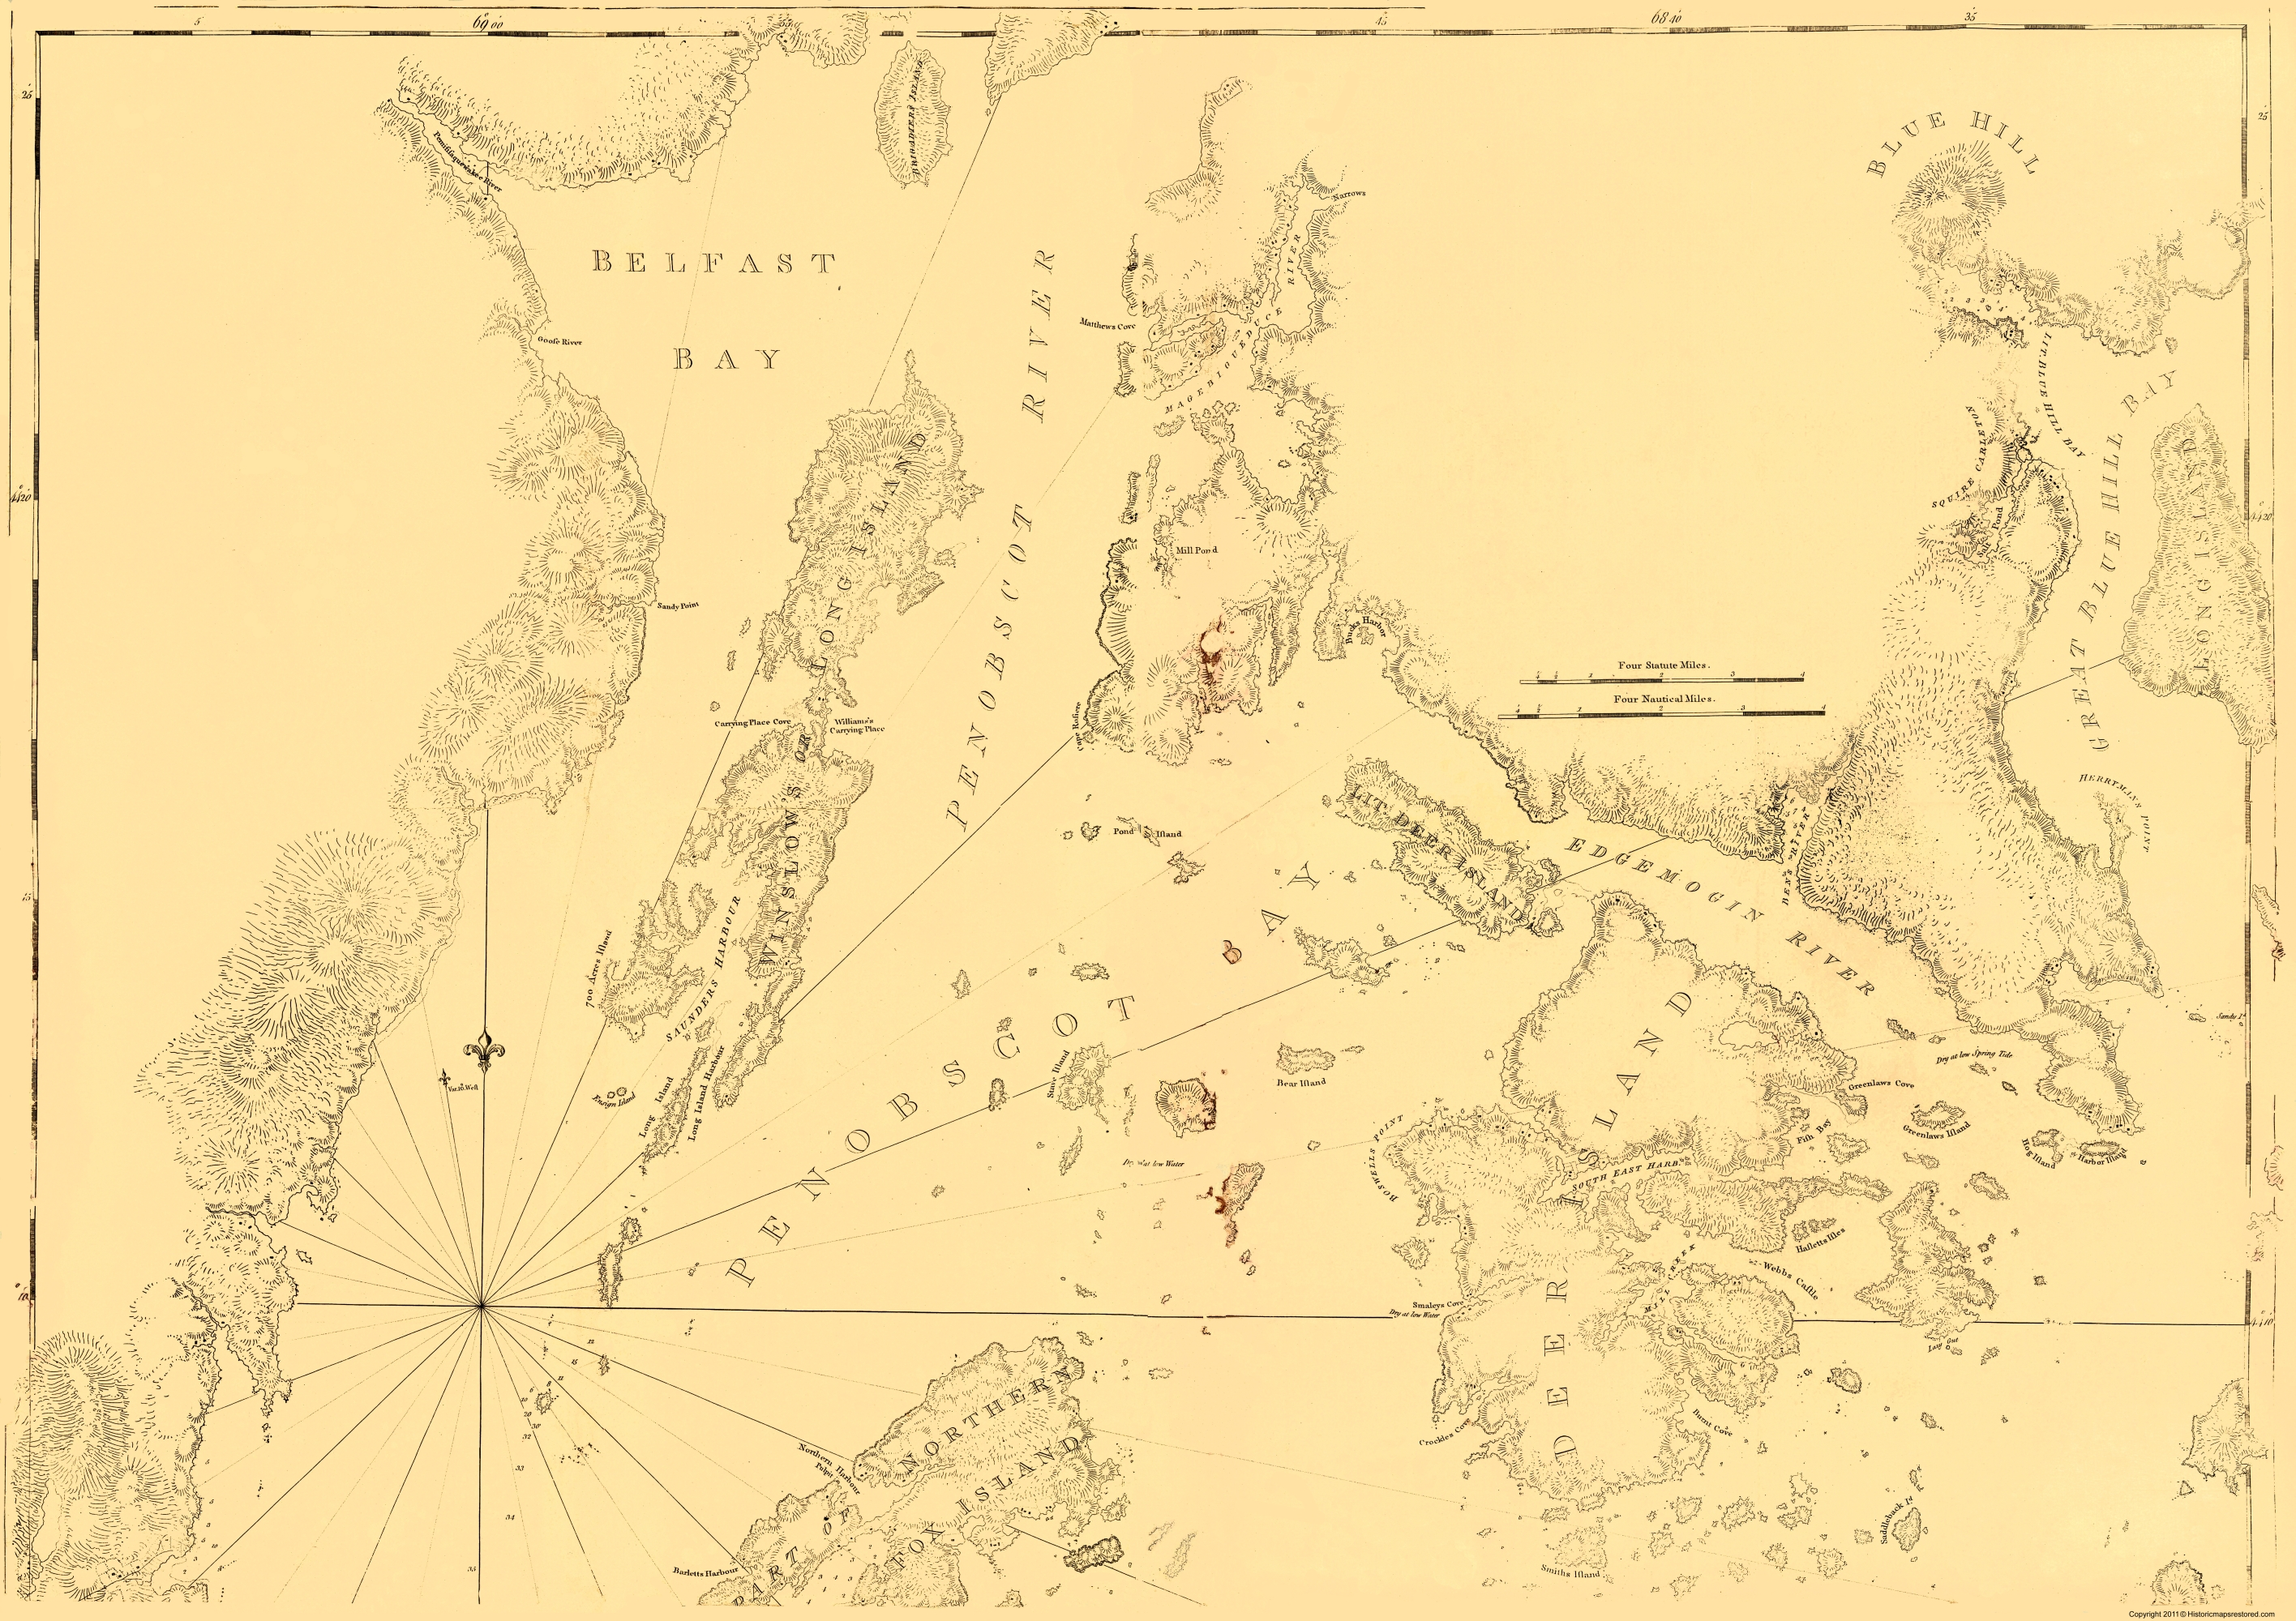 Old Maine Map.Old War Map Blue Hill To Belfast Bay Maine 1770